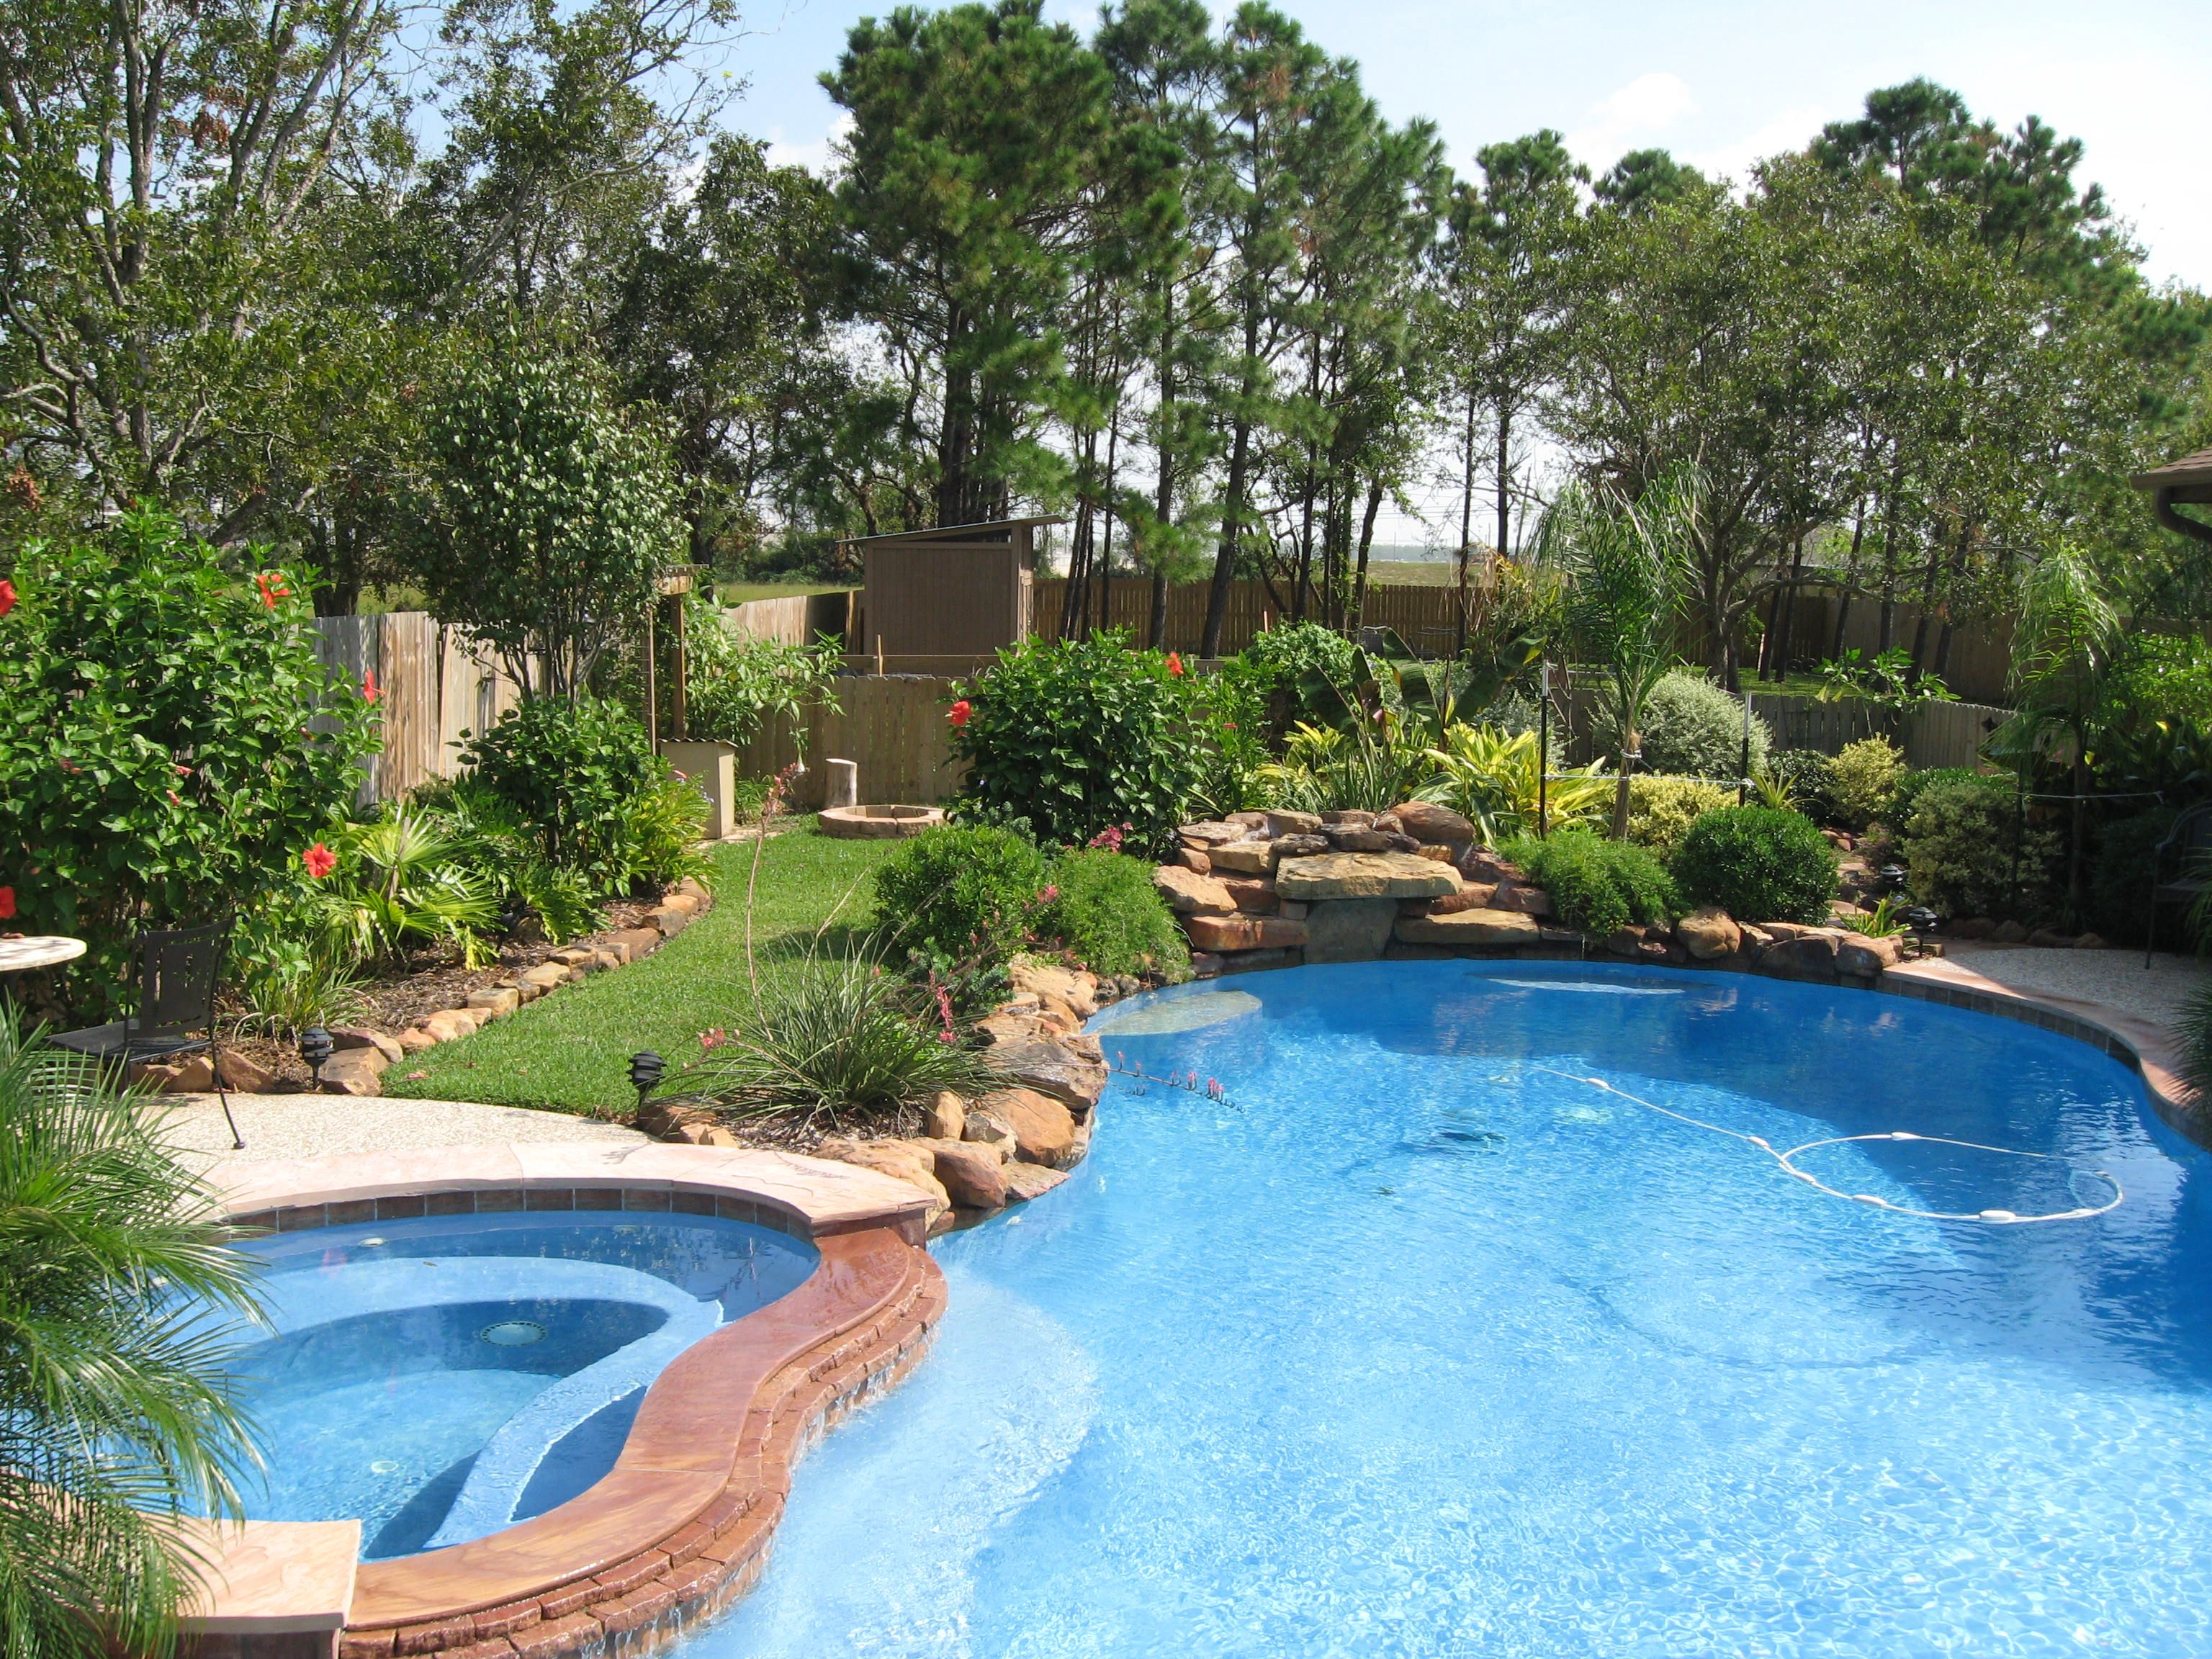 Landscaping Around A Pool Plants That Require More Water Are